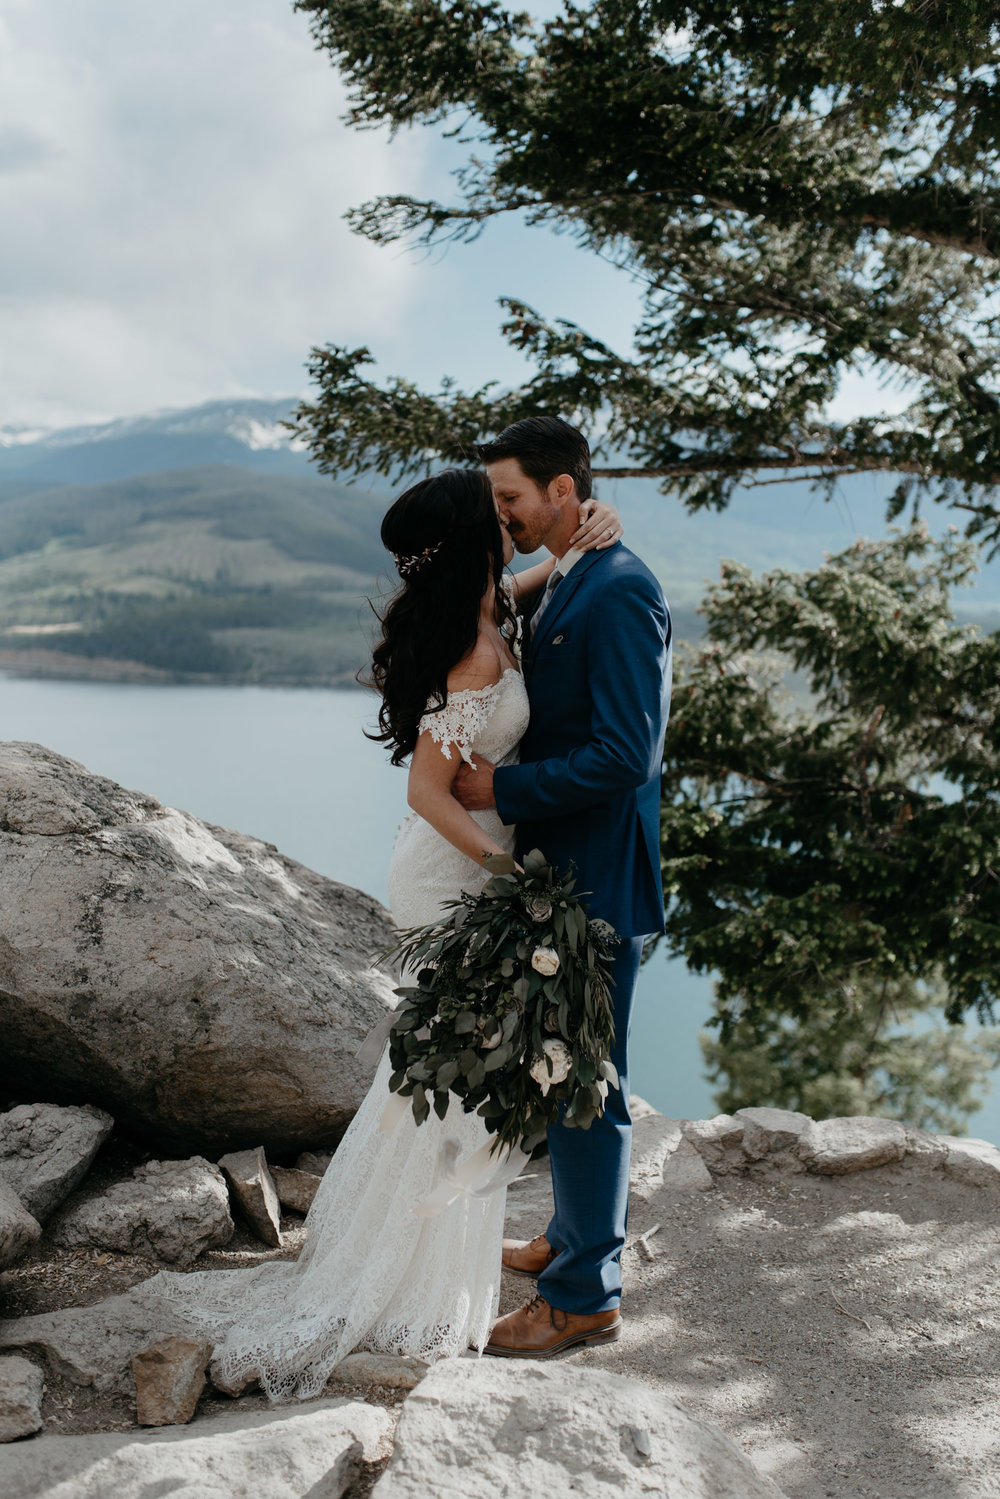 Colorado mountain elopement and wedding photographer. Destination wedding in Breckenridge, Colorado.